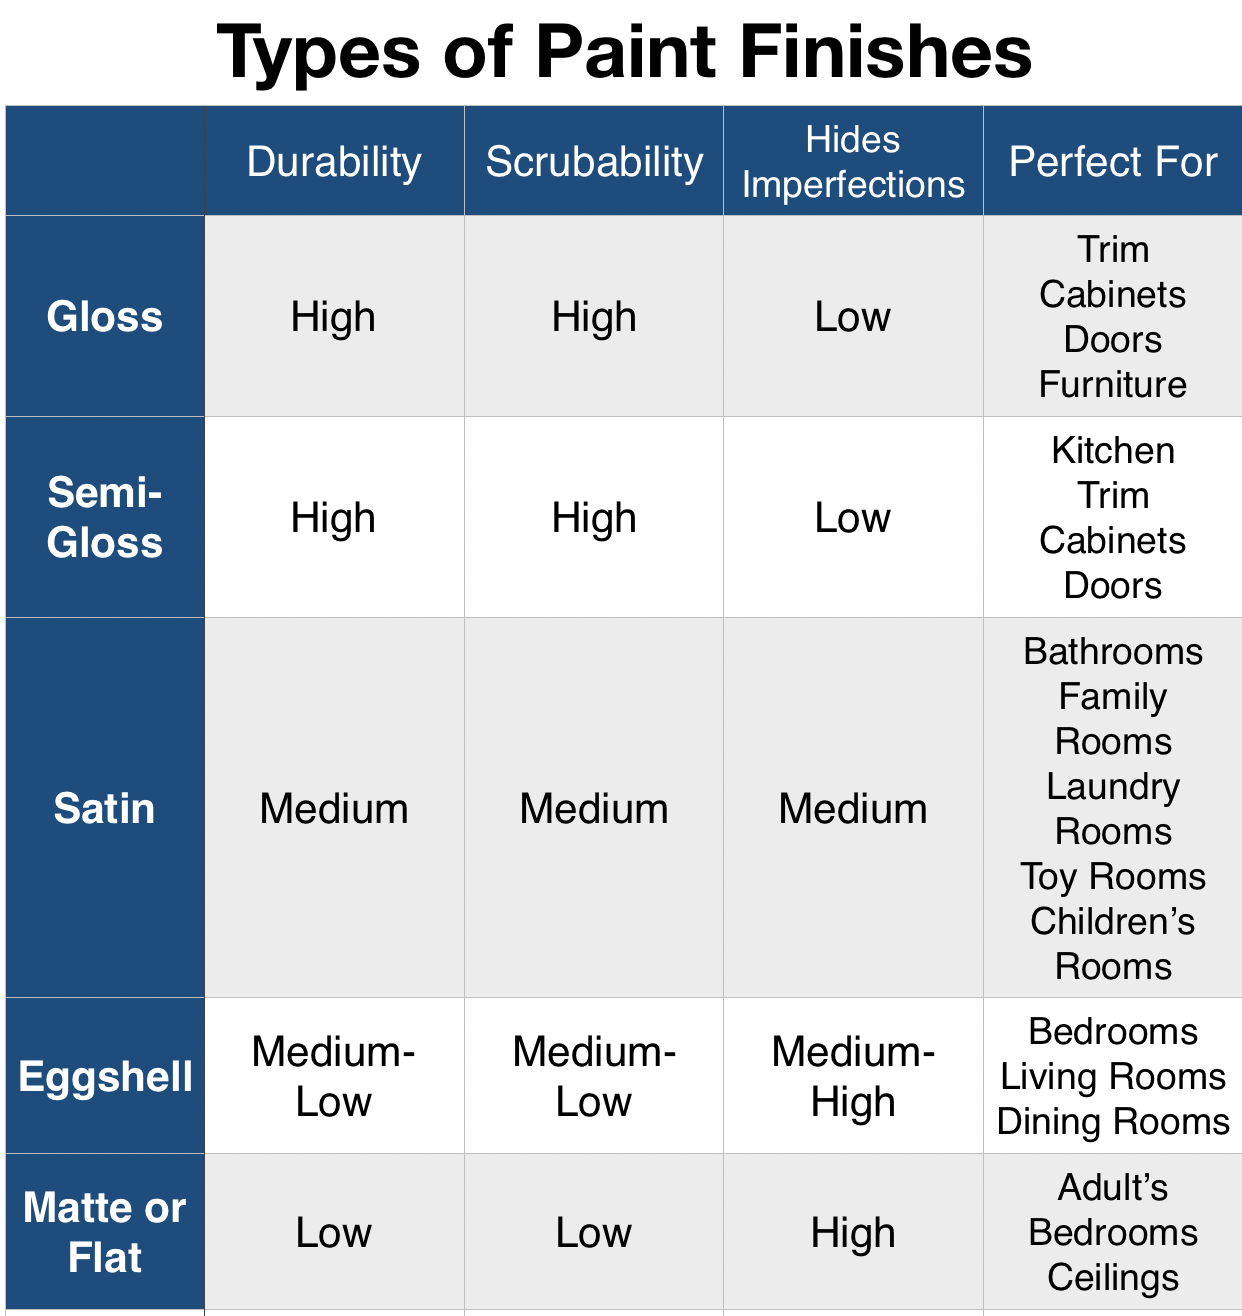 Types of Paint Finishes (With images) | Paint sheen guide, Paint ...